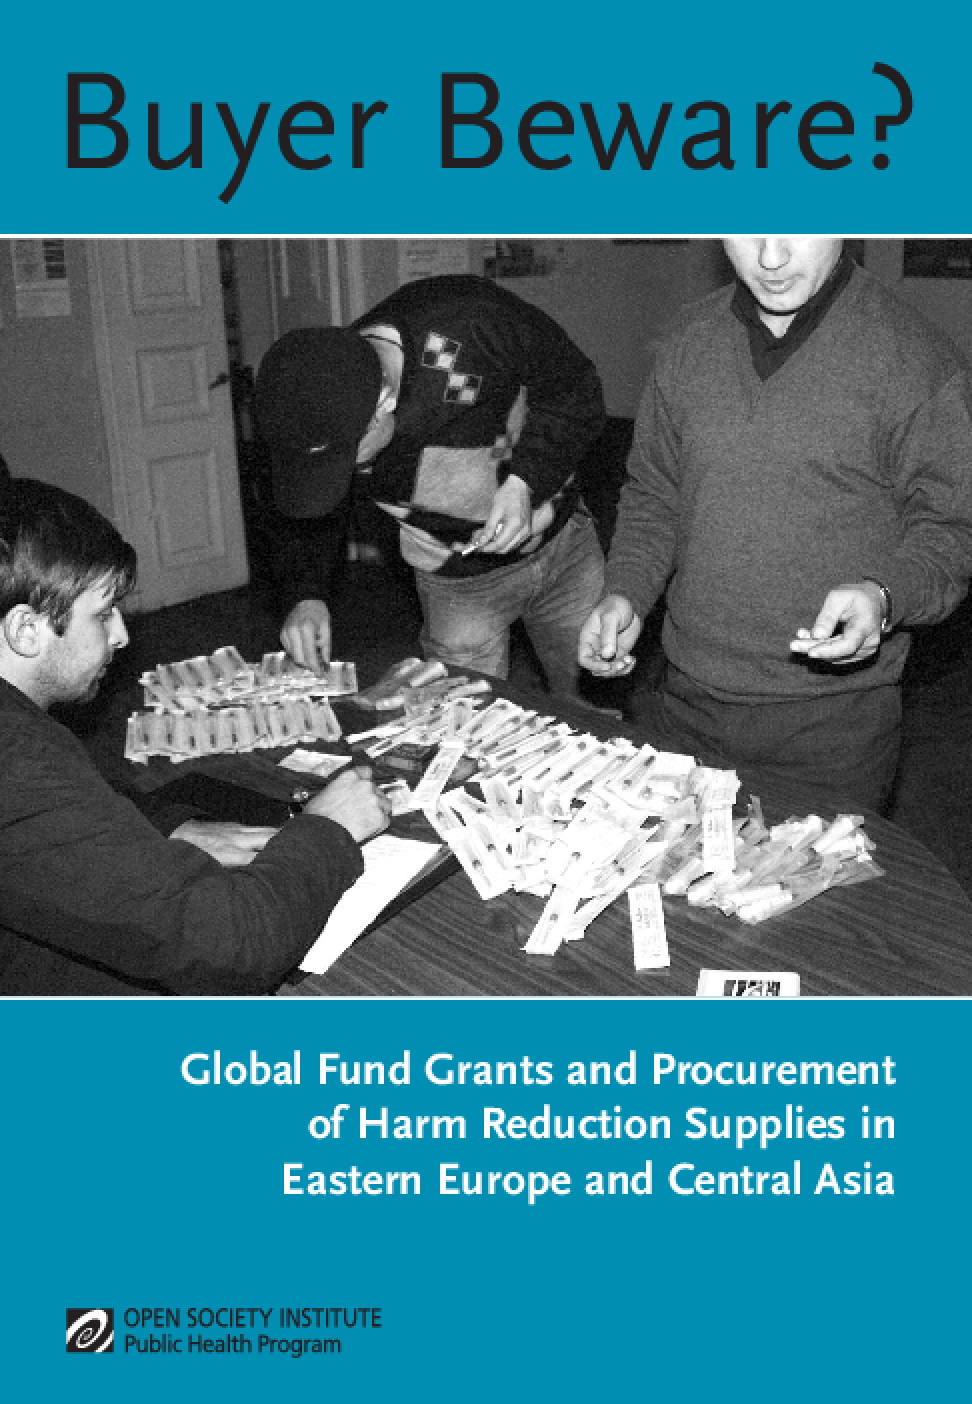 Buyer Beware? Global Fund Grants and Procurement of Harm Reduction Supplies in Eastern Europe and Central Asia